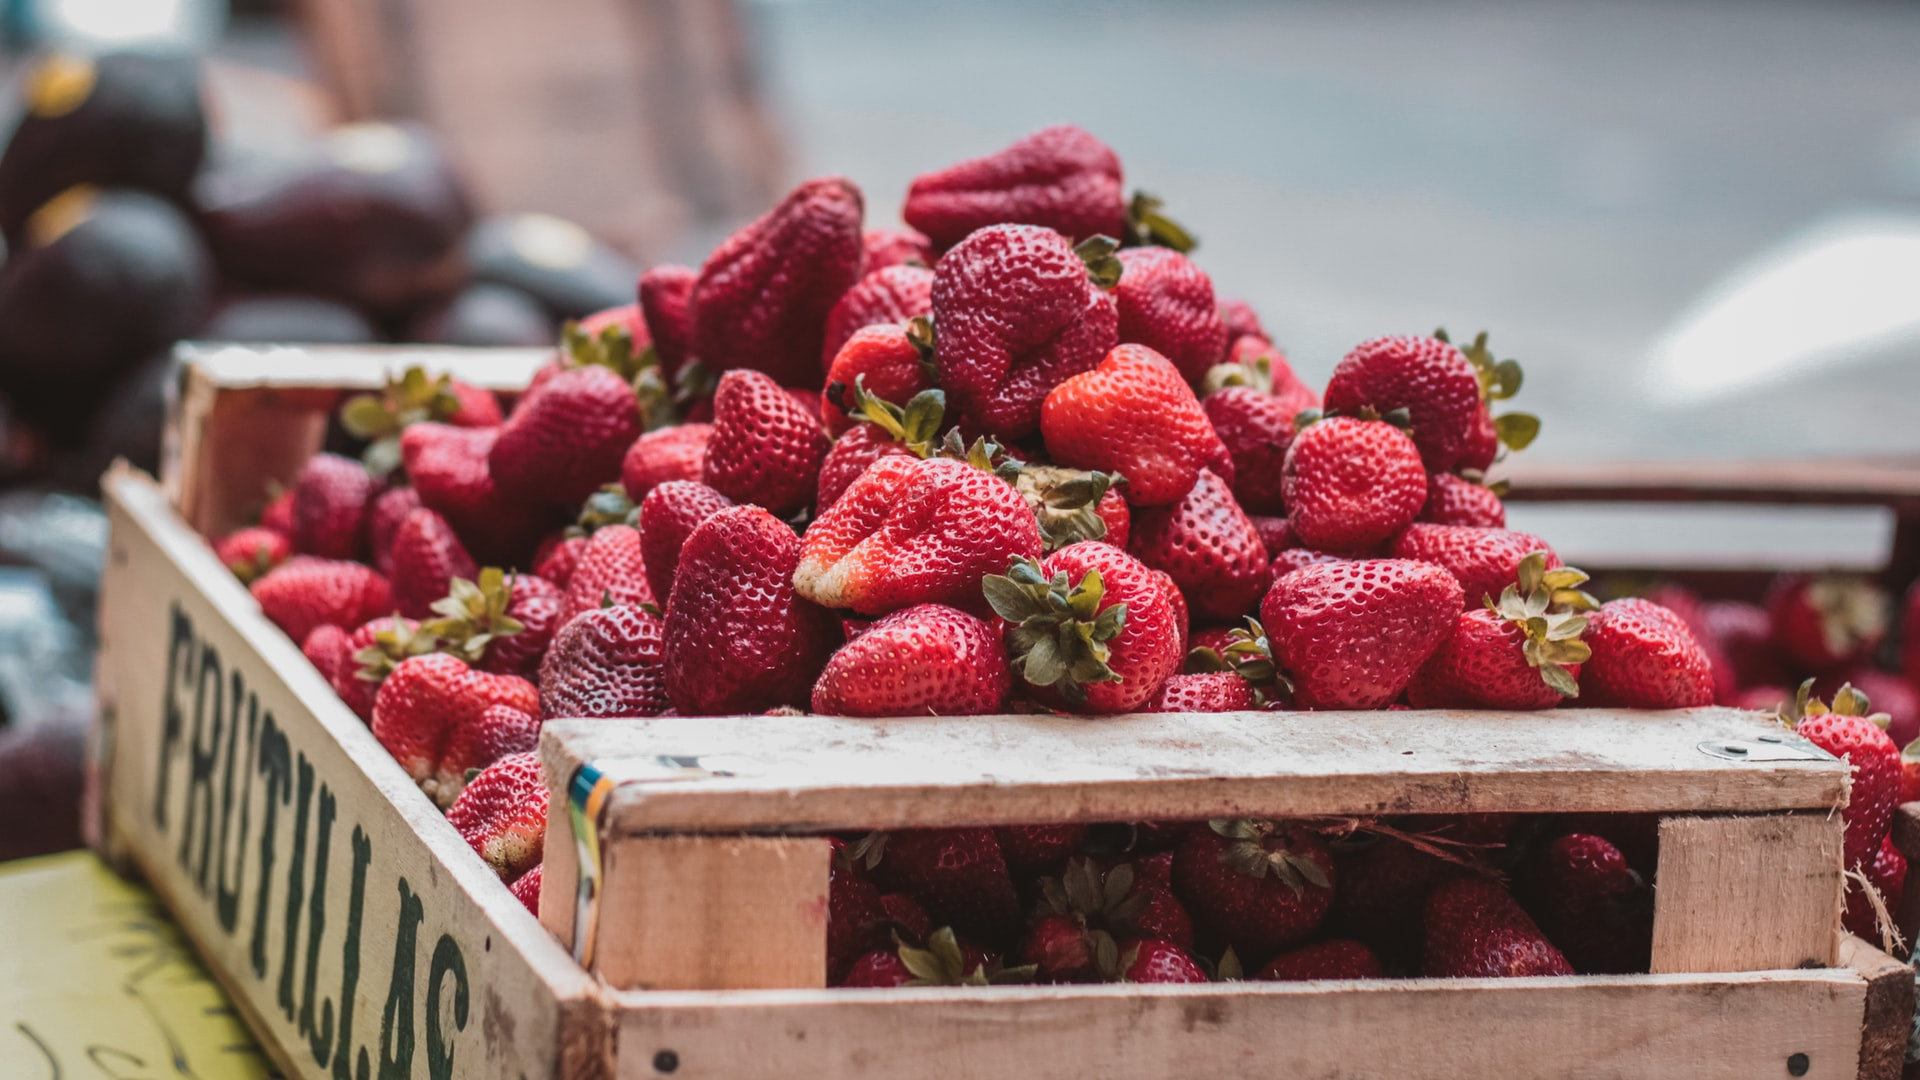 Stock Your Aberdeen Apartment With Fresh Produce From the Perryville Farmers Market